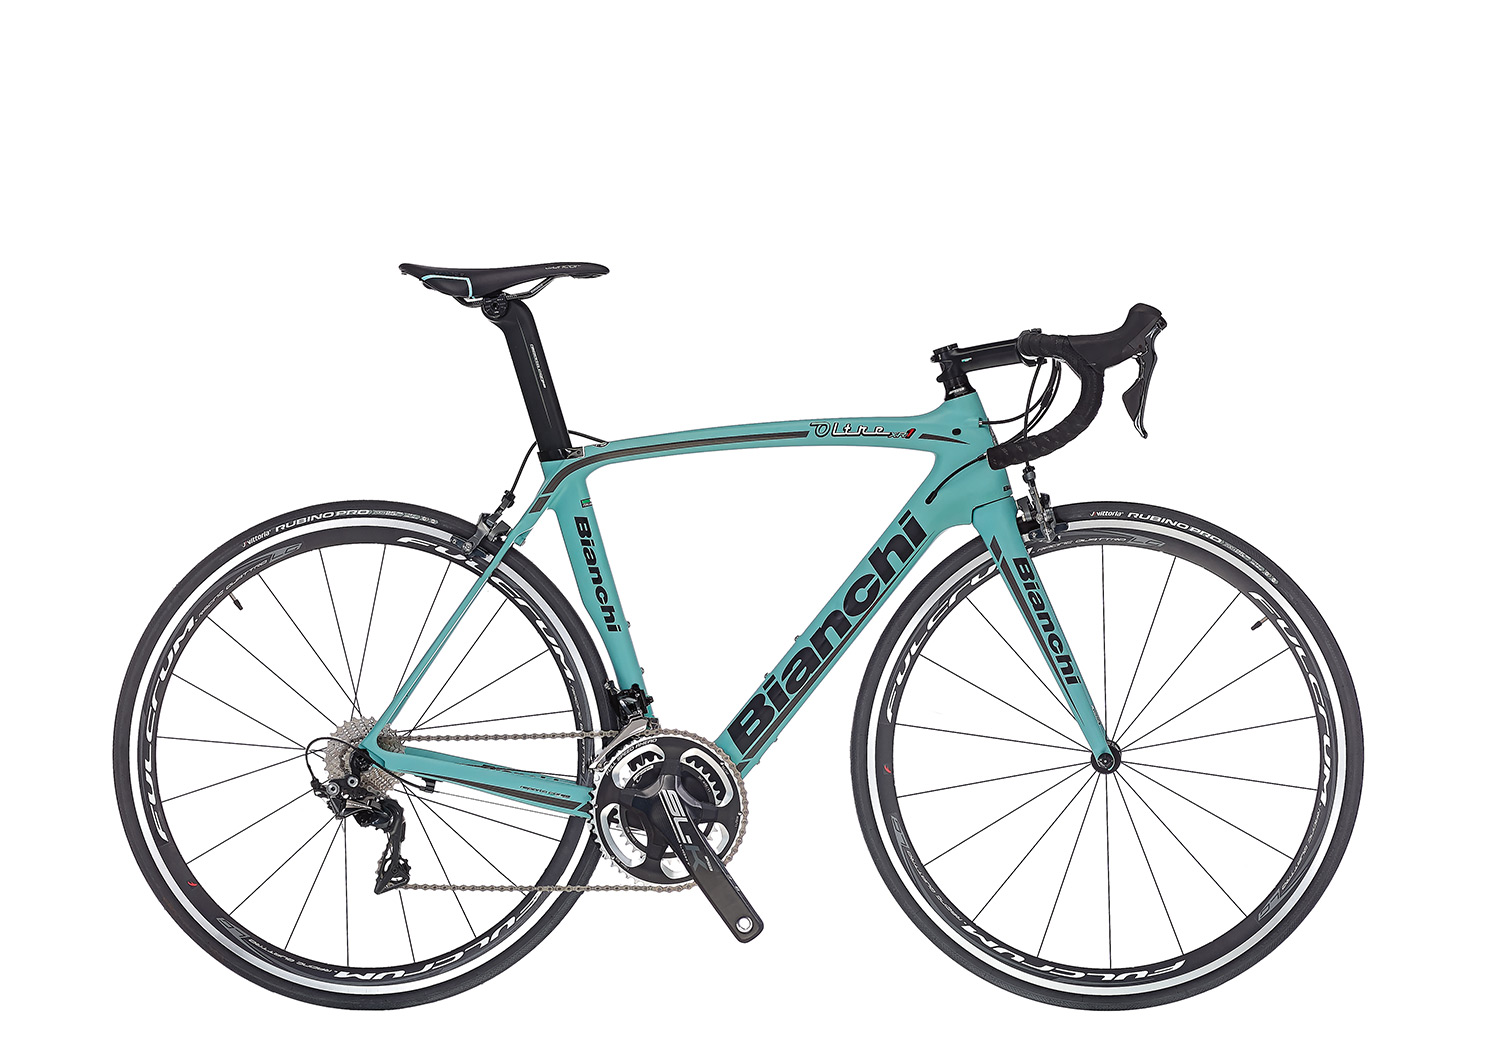 Bianchi Oltre XR1 Dura Ace (2017)